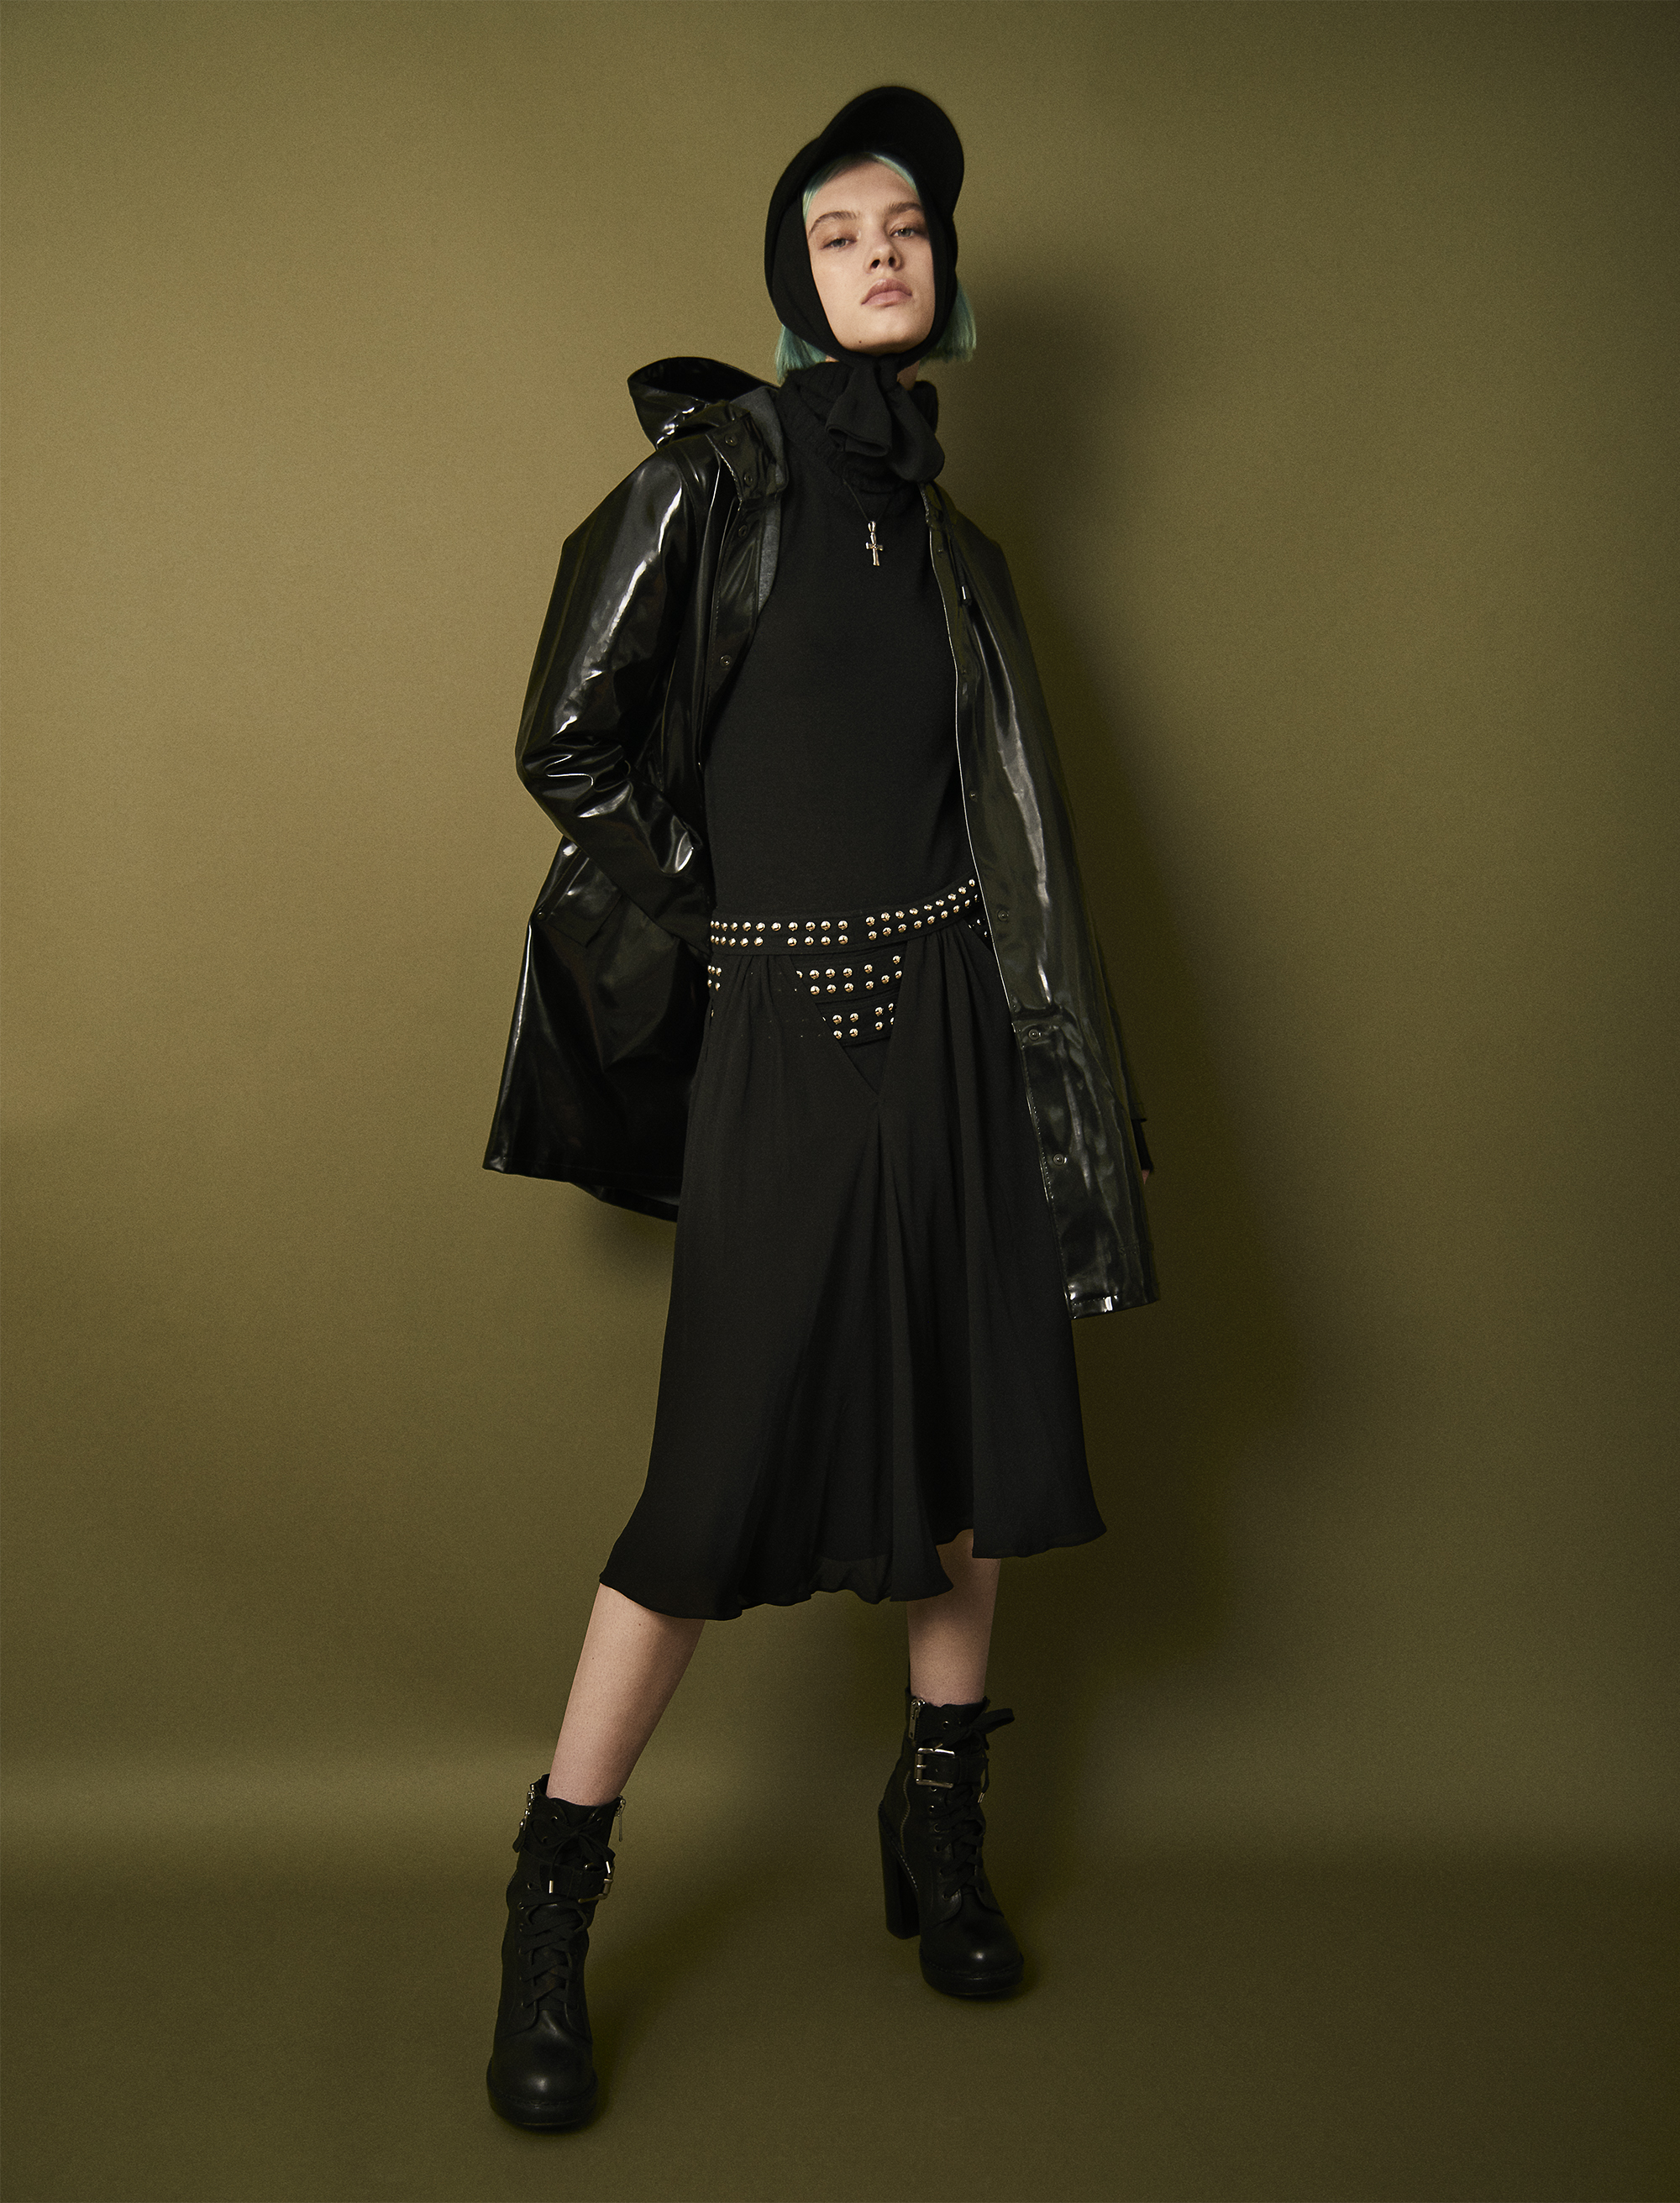 Rain coat  Stutterheim . Turtle neck sweater  Prad a. Skirt and boots vintage  PHI . Leggings around head  Wolford . Baseball cap  Epoch . Necklace Sasha's own